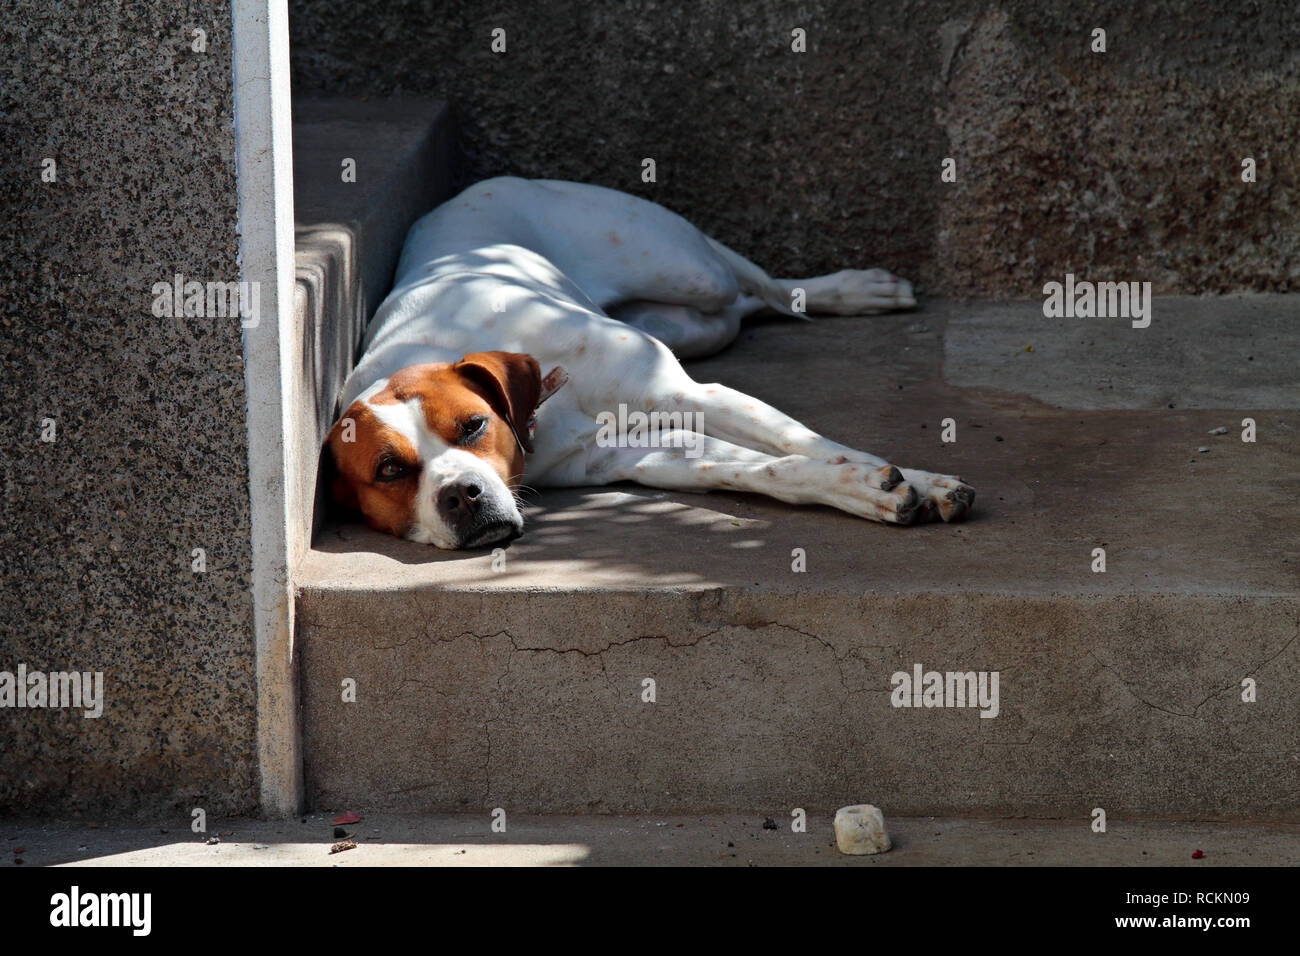 A big and strong crossbred dog lying in front of its home on concrete - Stock Image